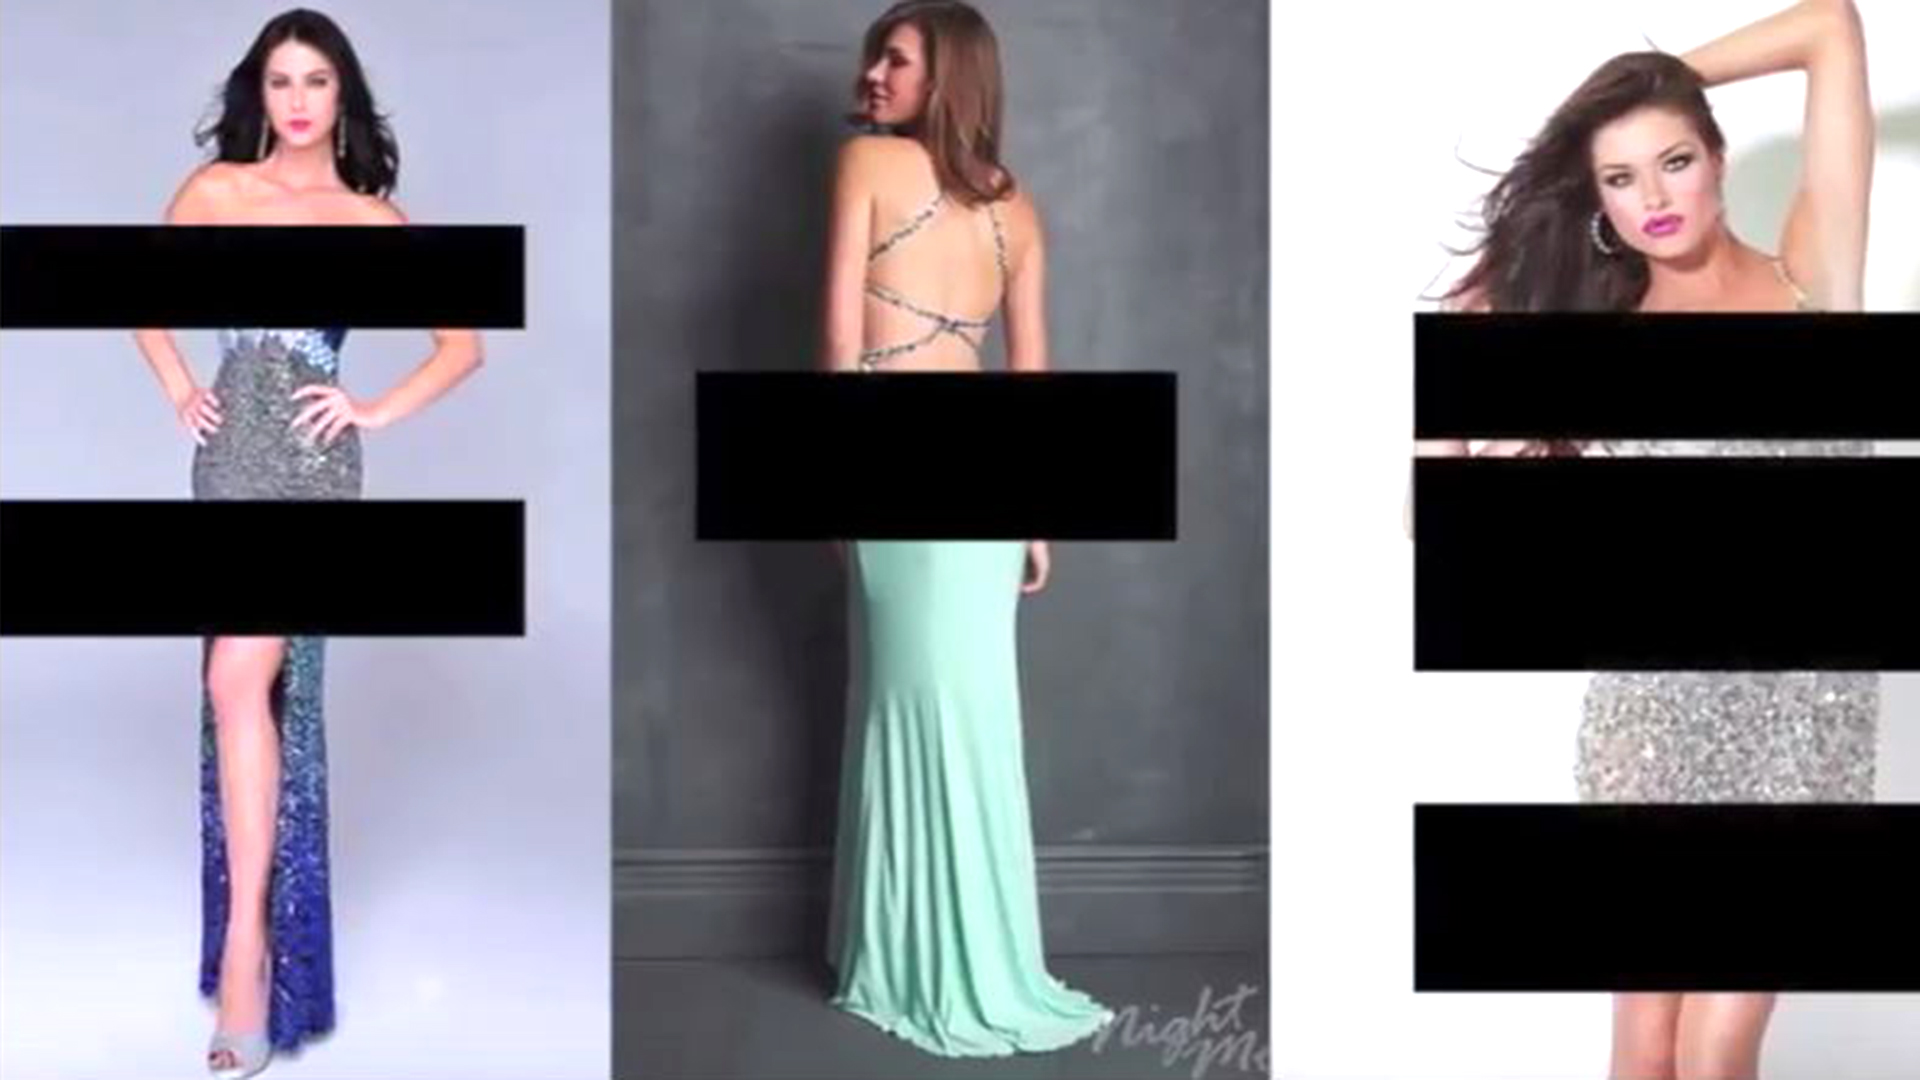 Whats prom propriate School outlines dress code in